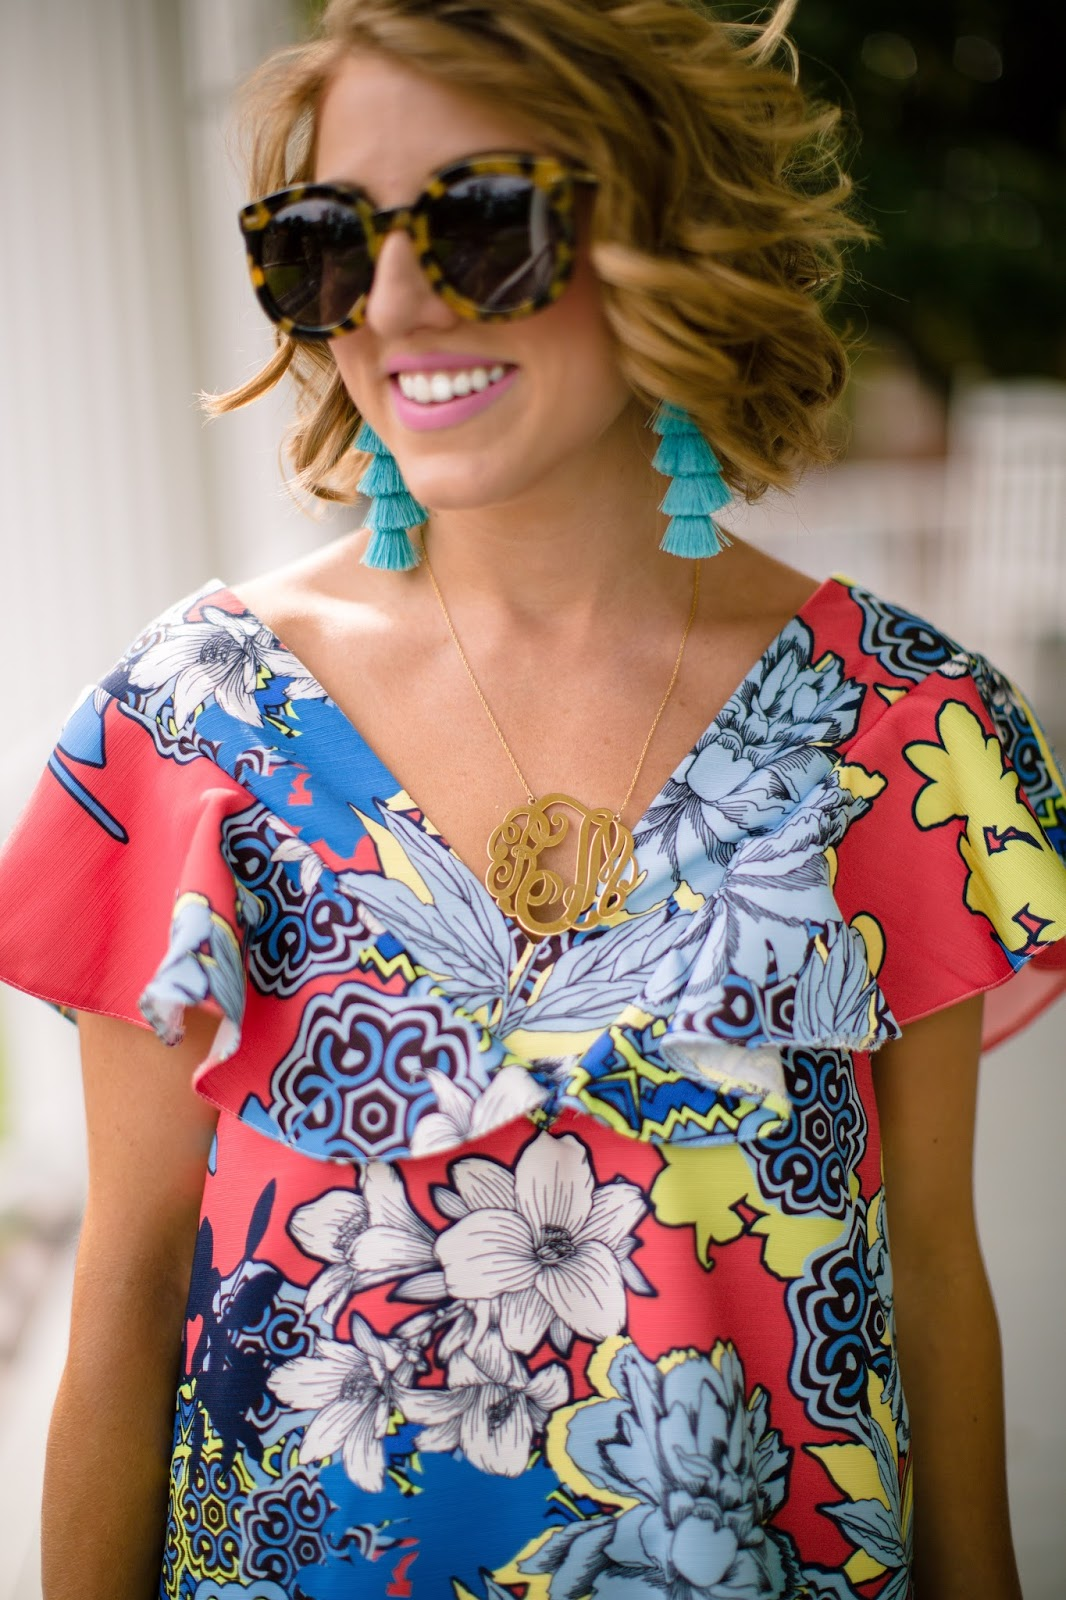 Monogram Necklace - Click through to see more on Something Delightful Blog!